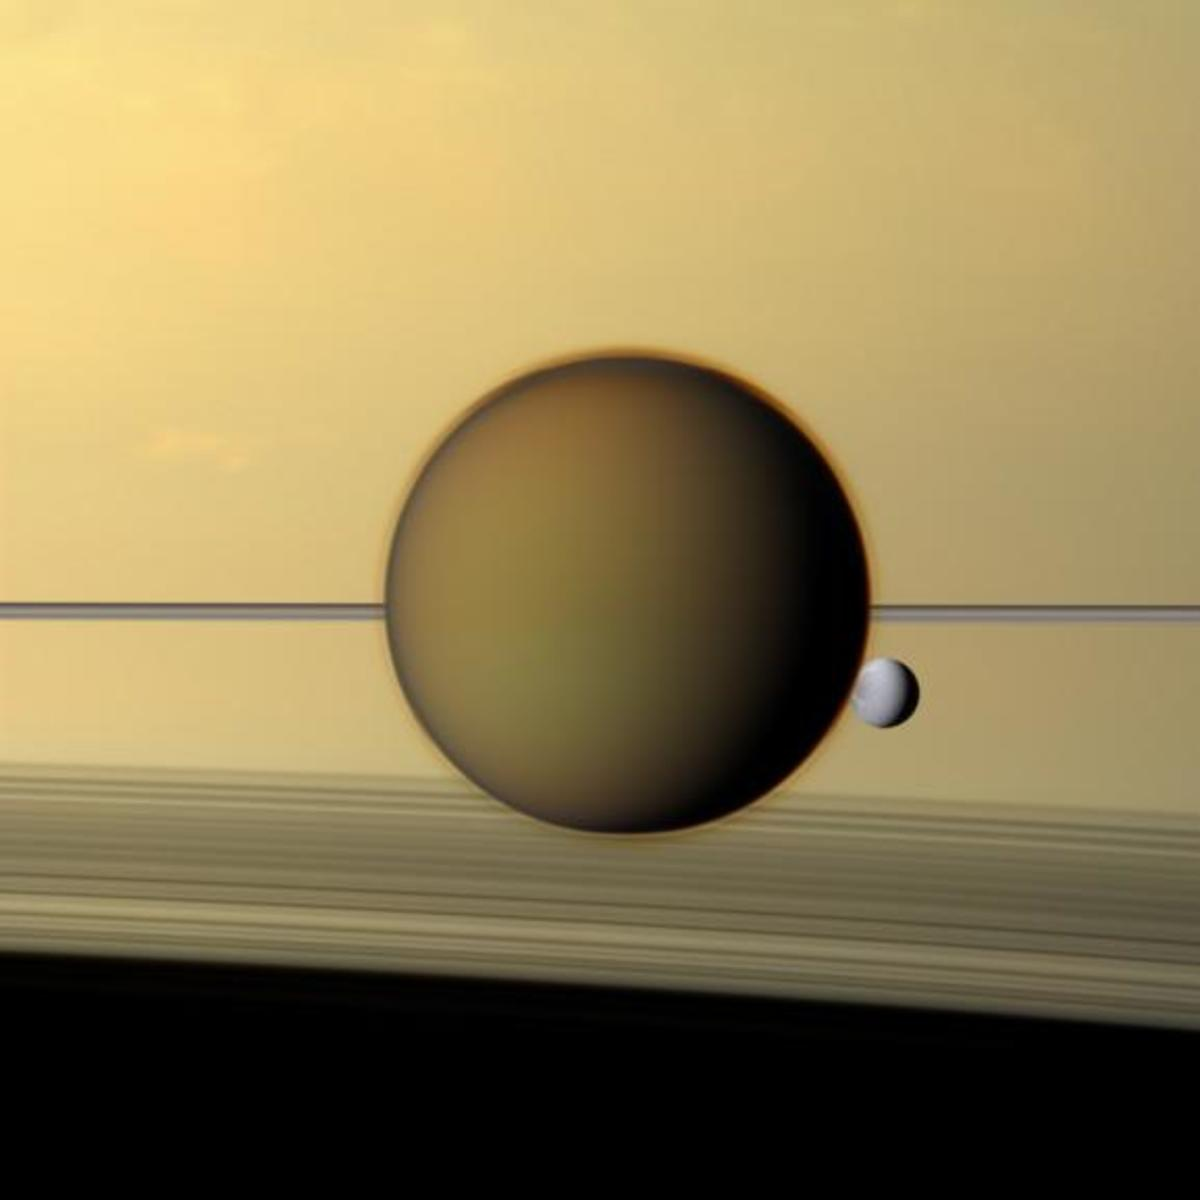 Saturn's moon Titan, 3200 miles across, and Dione, 698 miles across, float against the backdrop of Saturn's cloud tops and rings. Look closely; you can see Titan's fuzzy atmosphere in front of Dione.